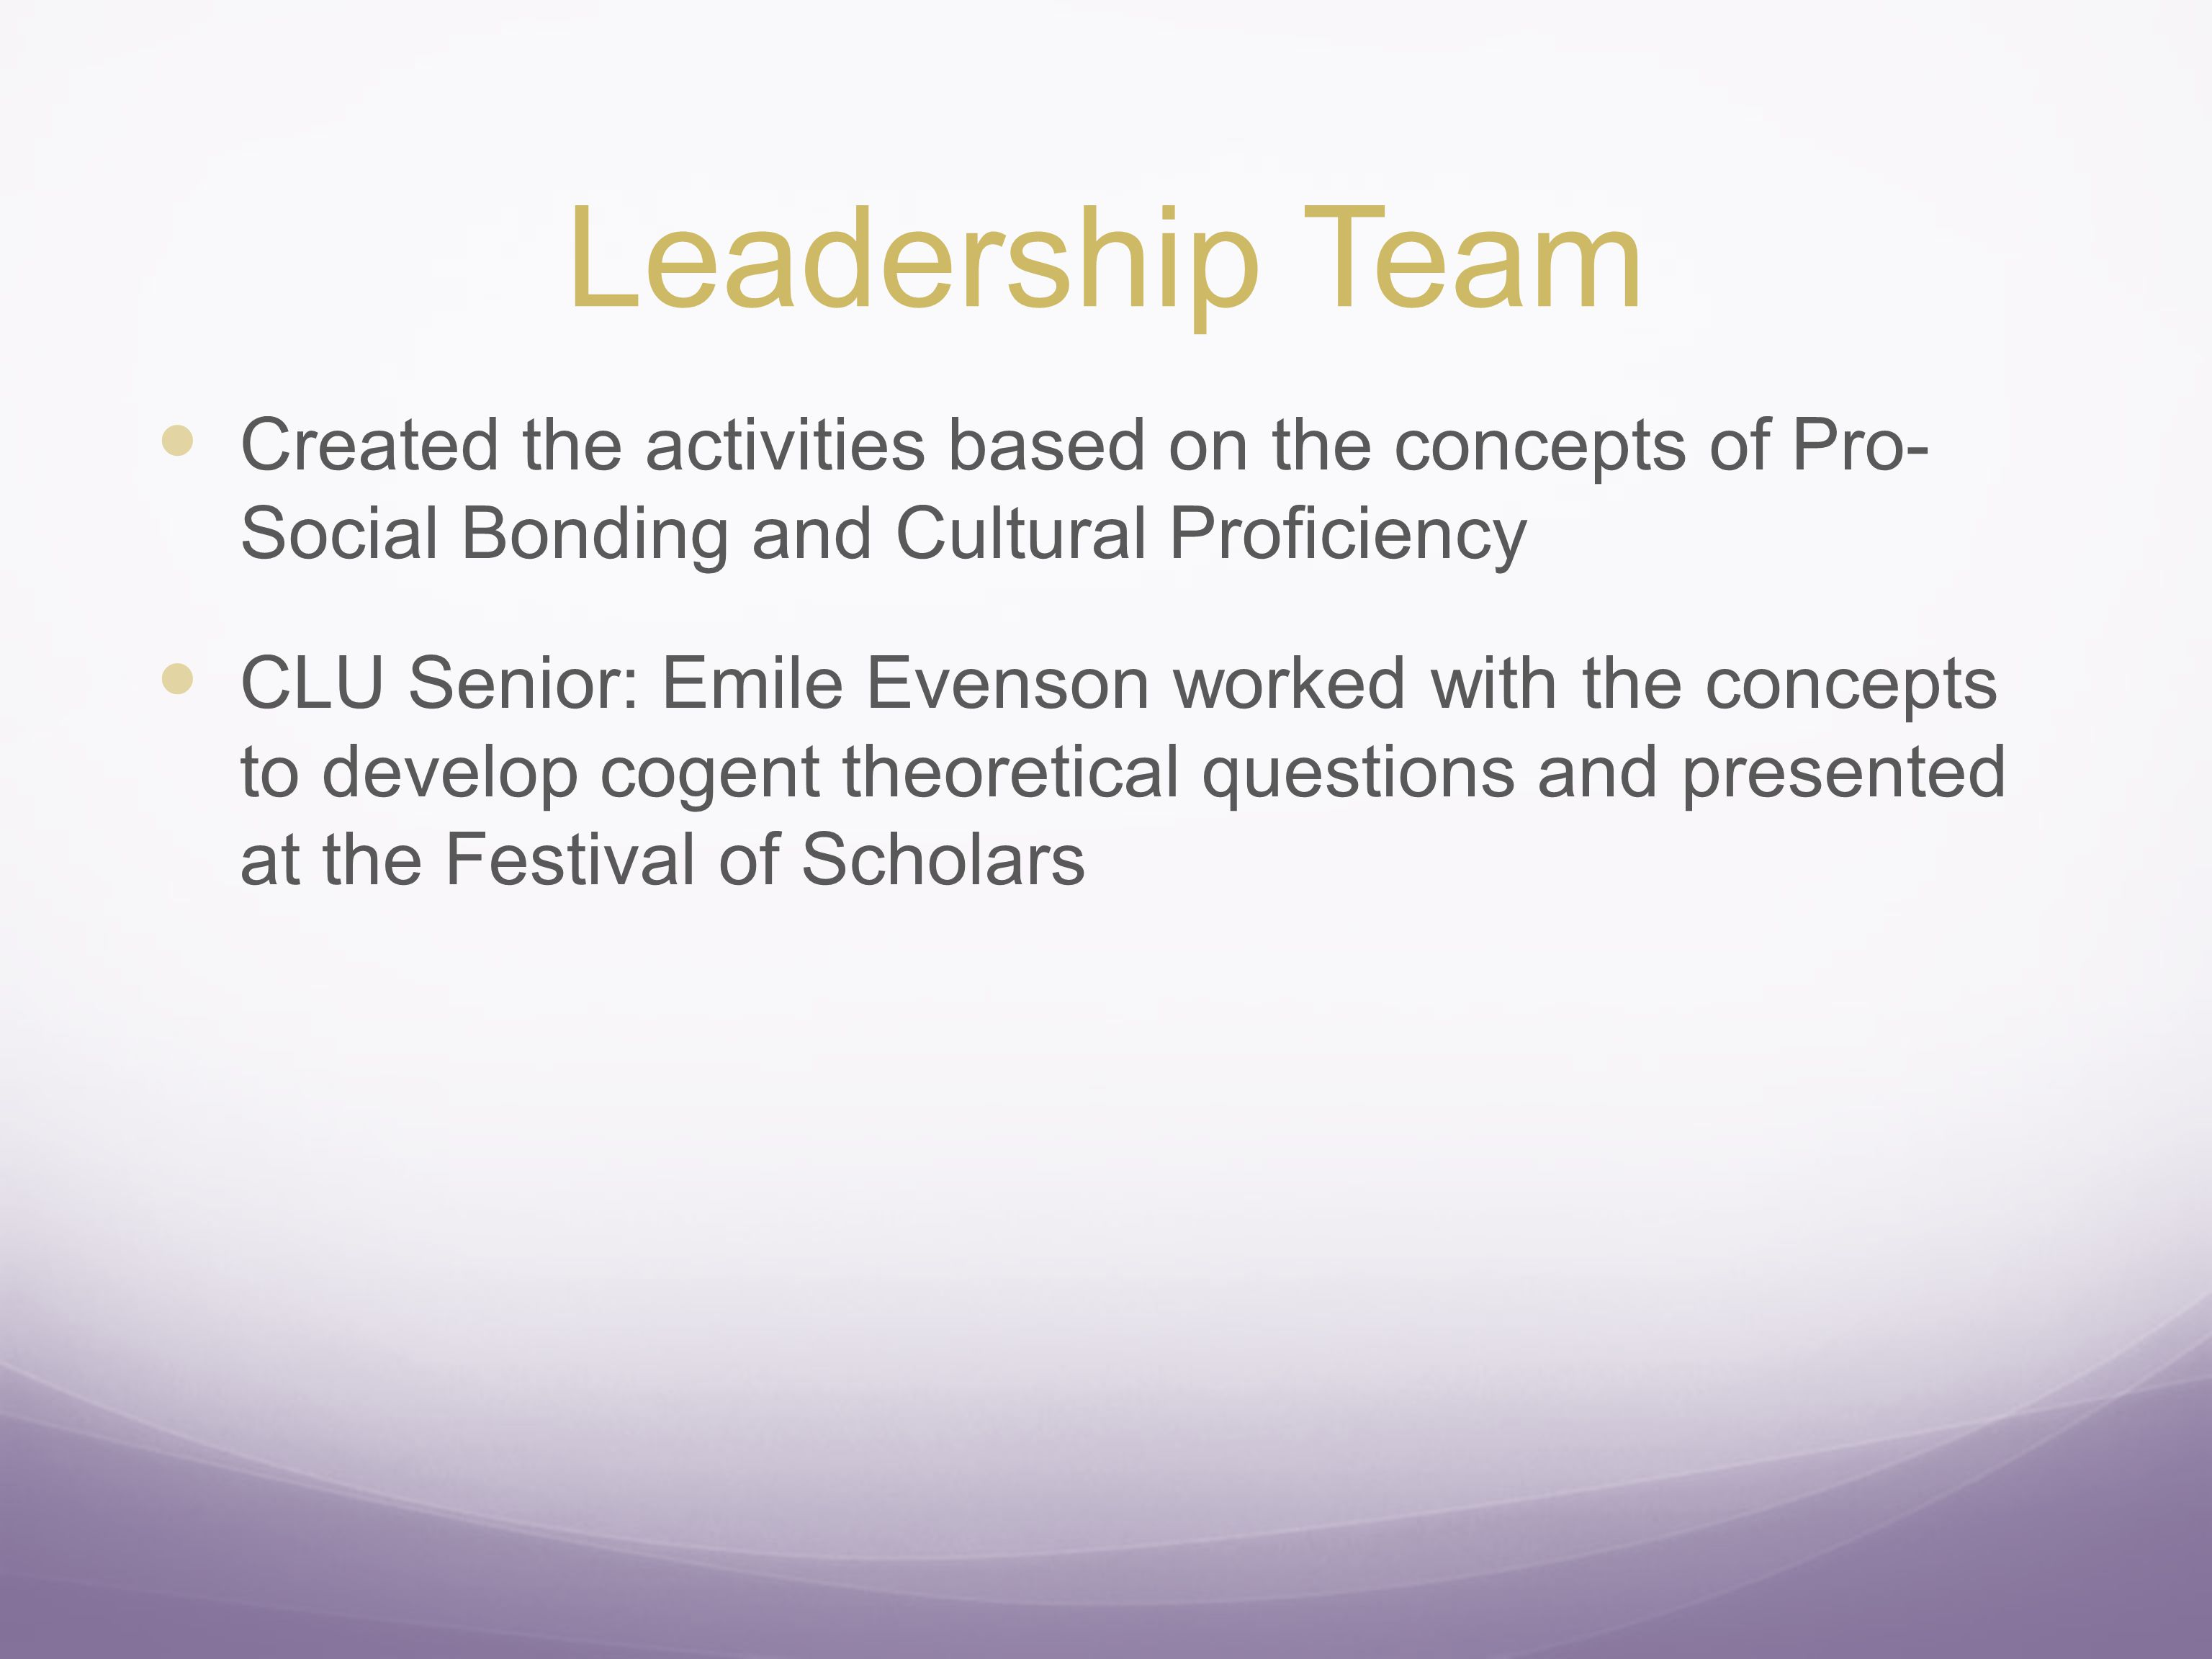 Leadership Team Created the activities based on the concepts of Pro- Social Bonding and Cultural Proficiency CLU Senior: Emile Evenson worked with the concepts to develop cogent theoretical questions and presented at the Festival of Scholars